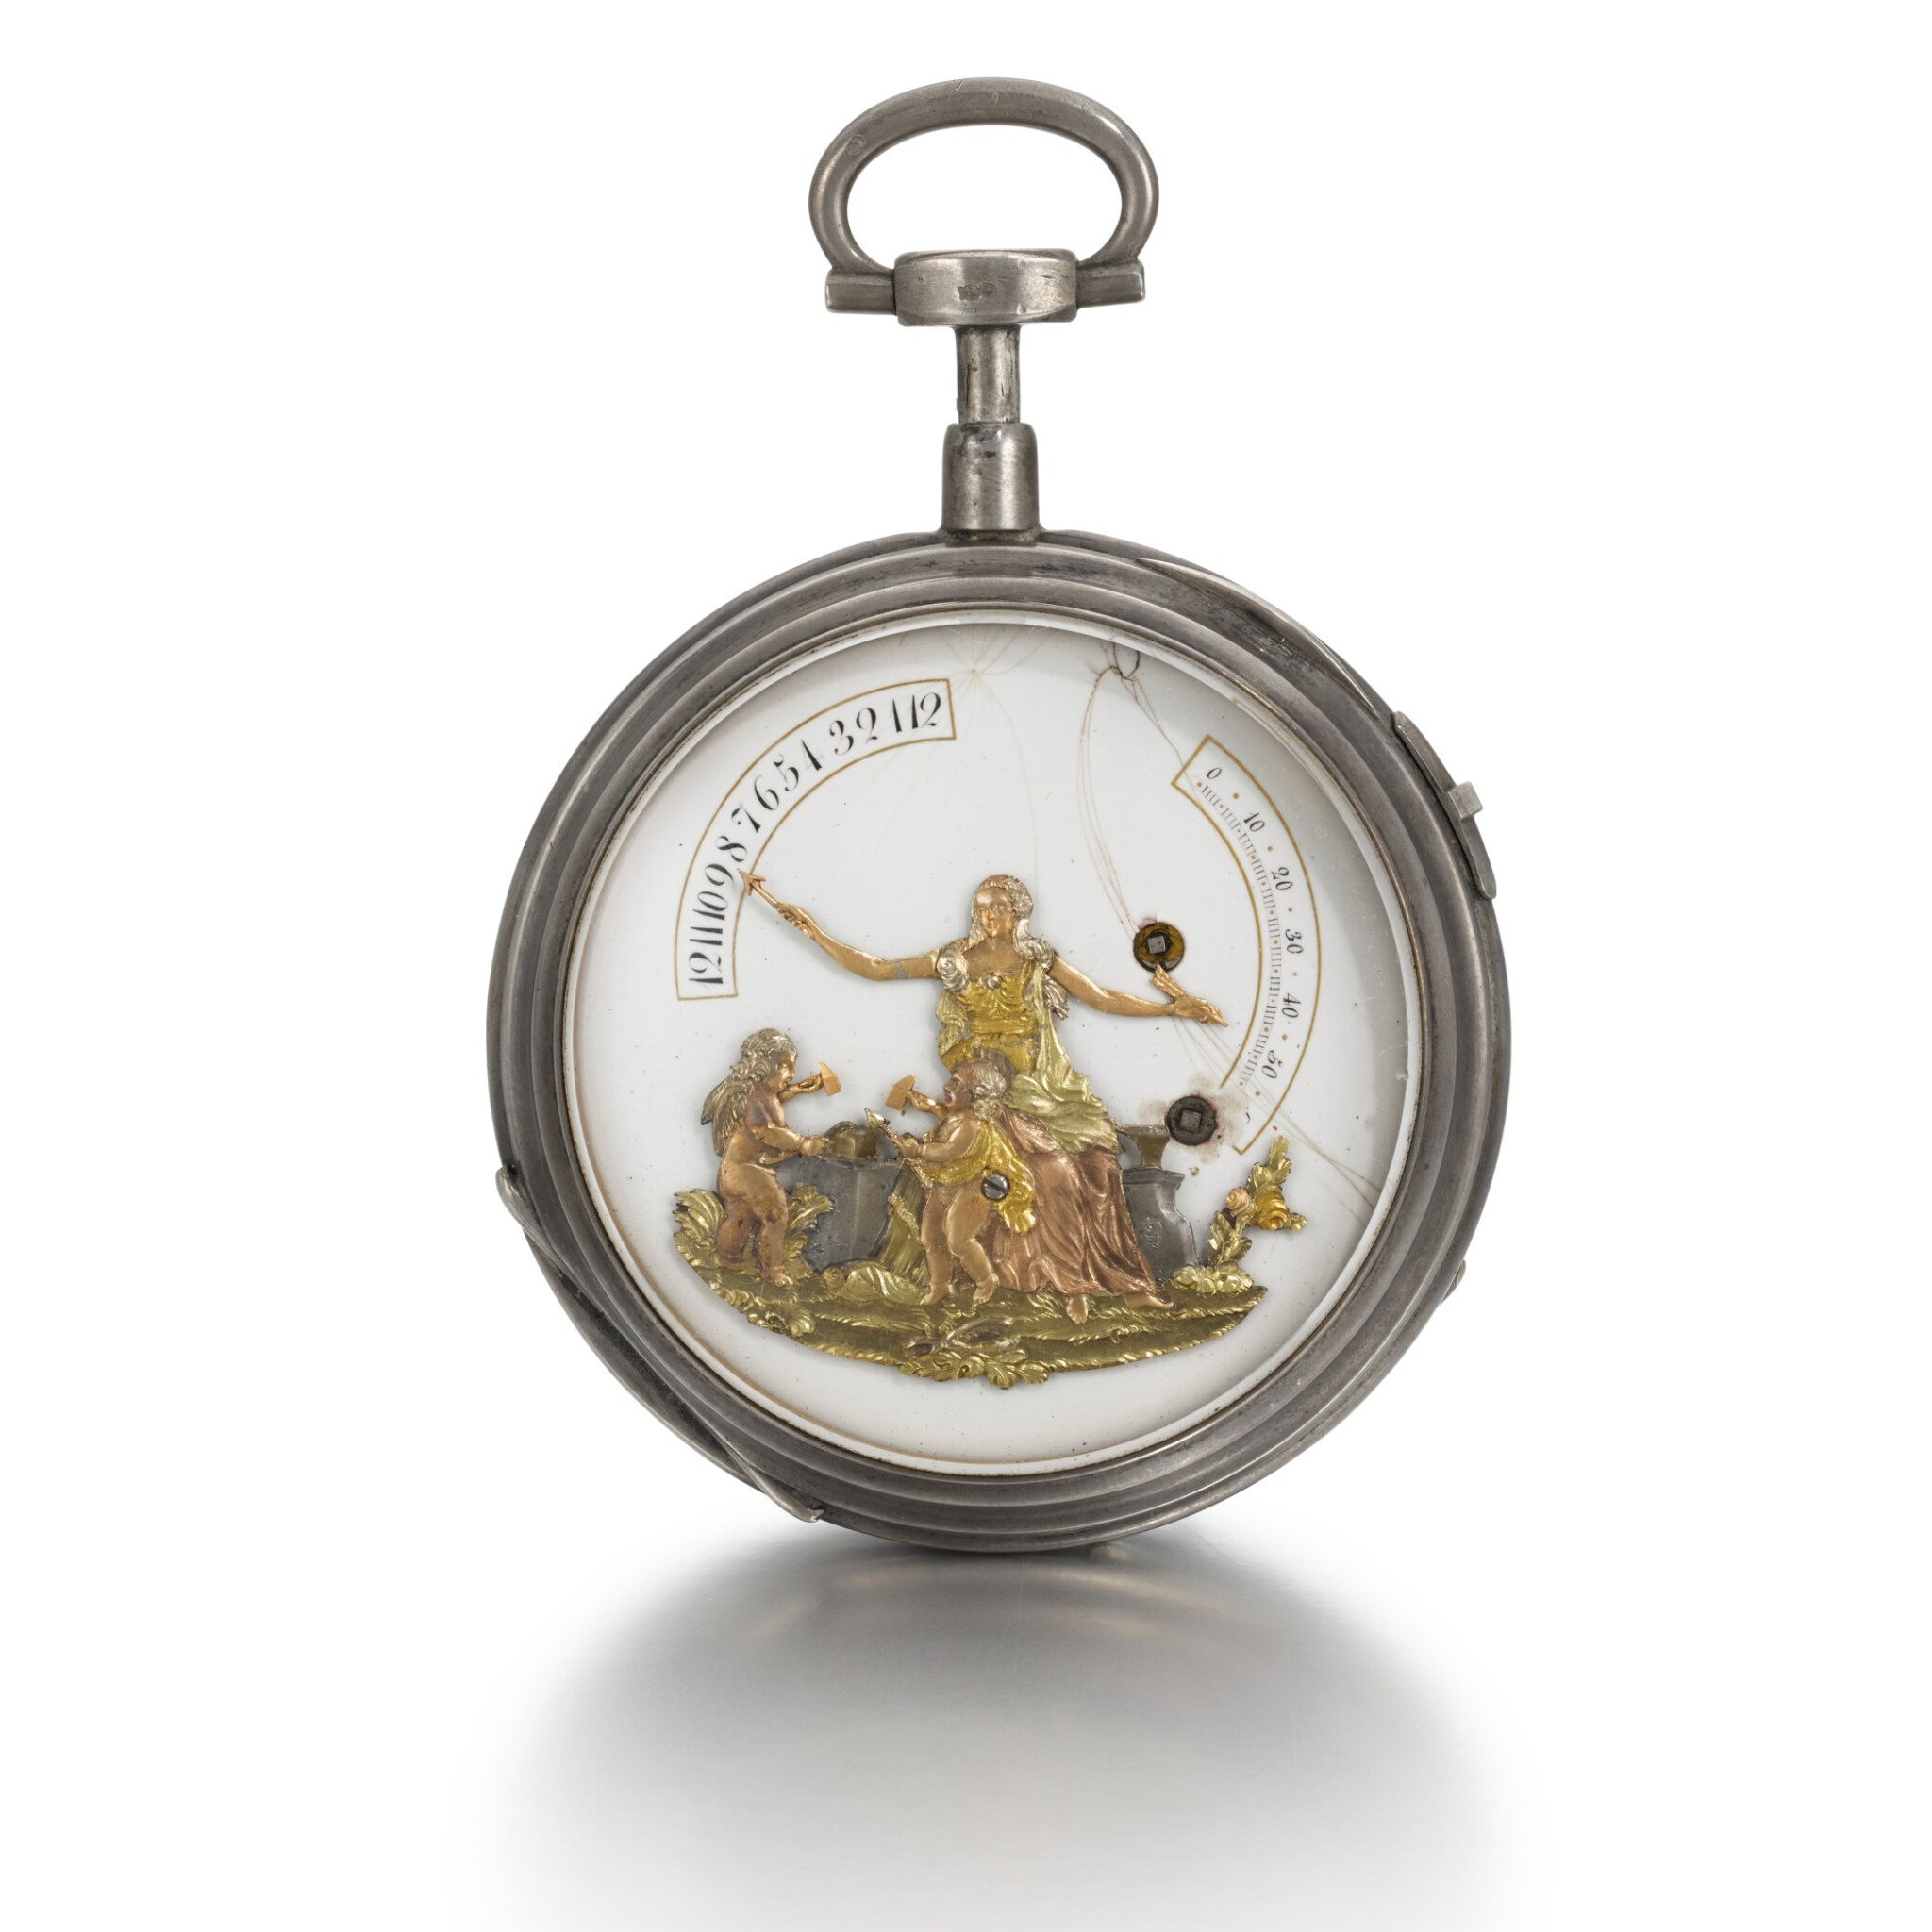 View full screen - View 1 of Lot 284. SWISS | A SILVER OPEN-FACED QUARTER REPEATING BRAS-EN-L'AIR WATCH WITH JACQUEMARTS, CIRCA 1790.